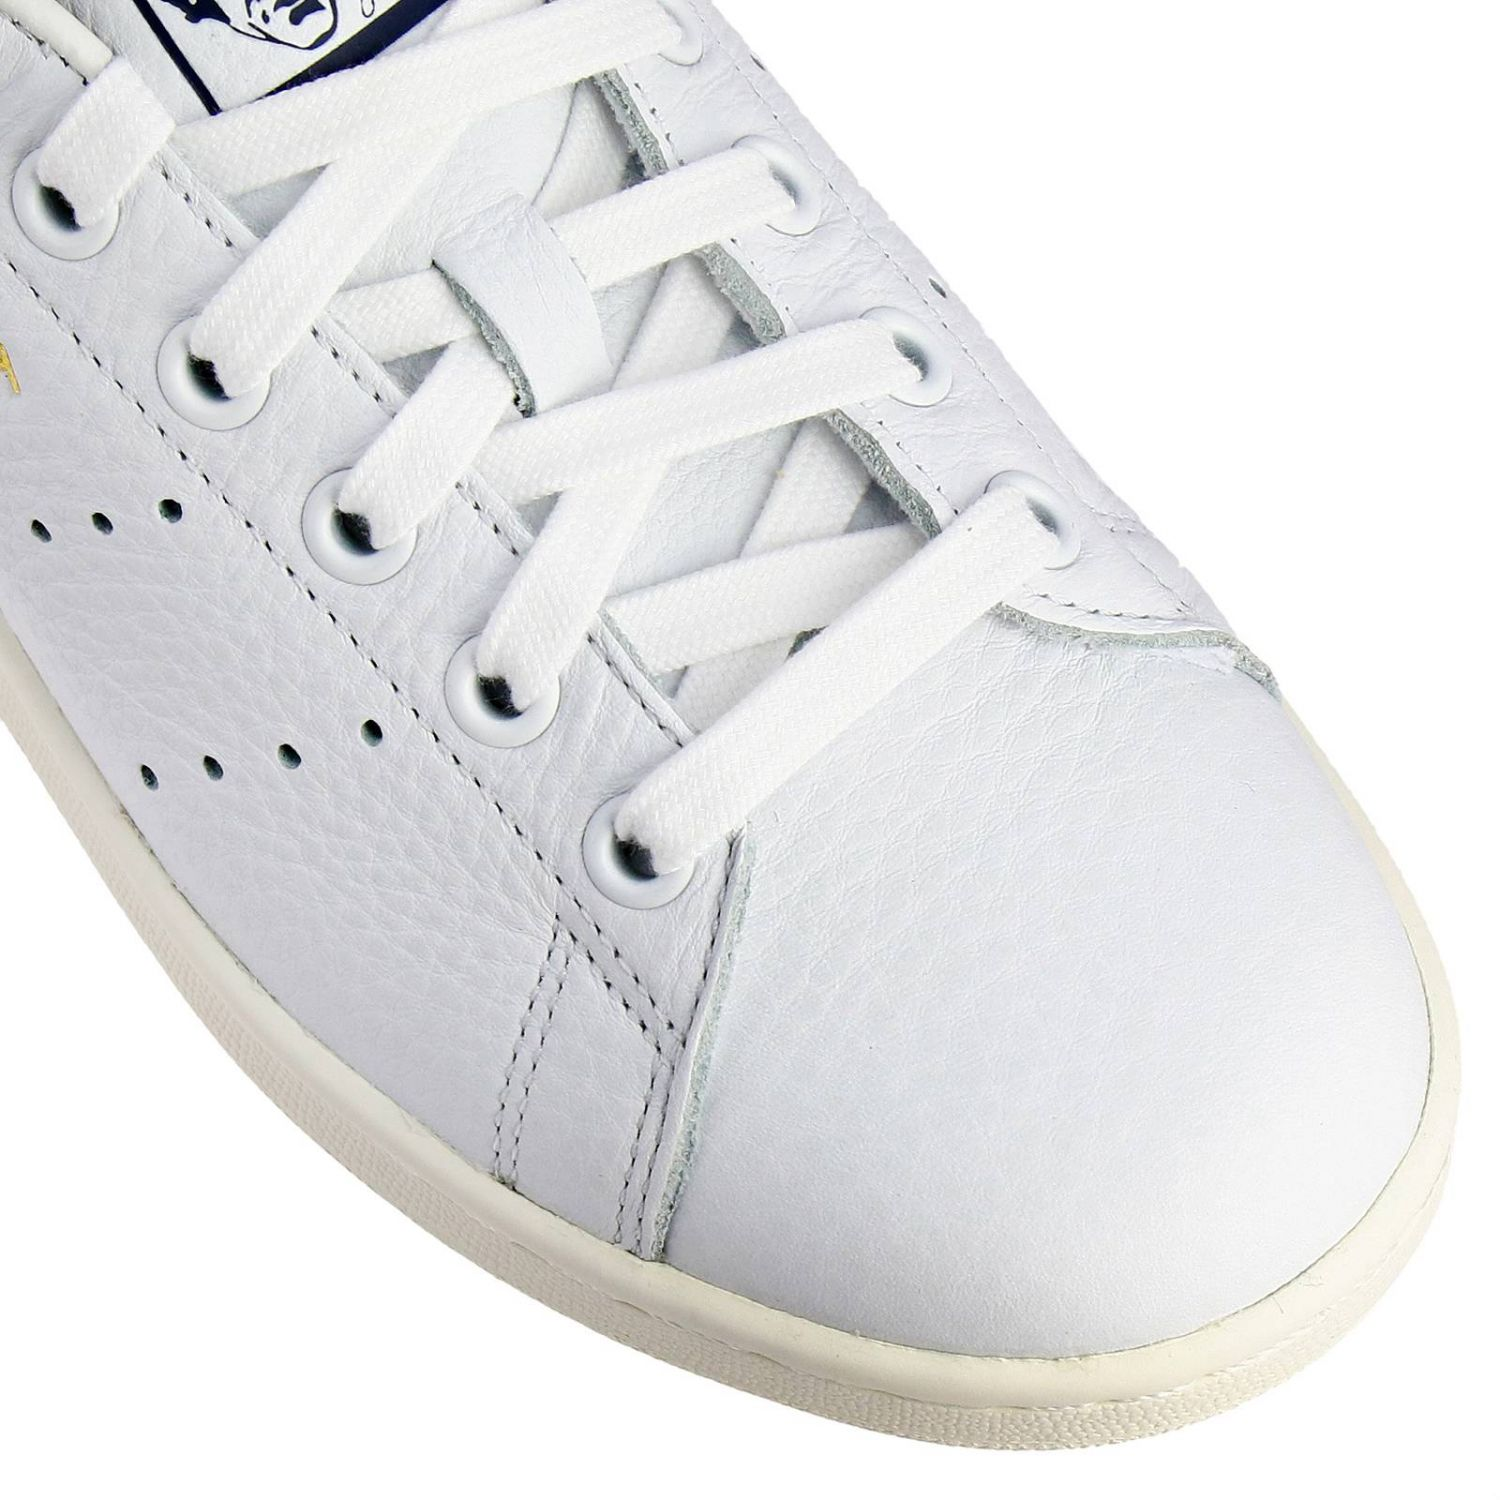 Sneakers Adidas Originals: Sneakers Stan Smith Adidas Originals in pelle con tallone a contrasto bianco 3